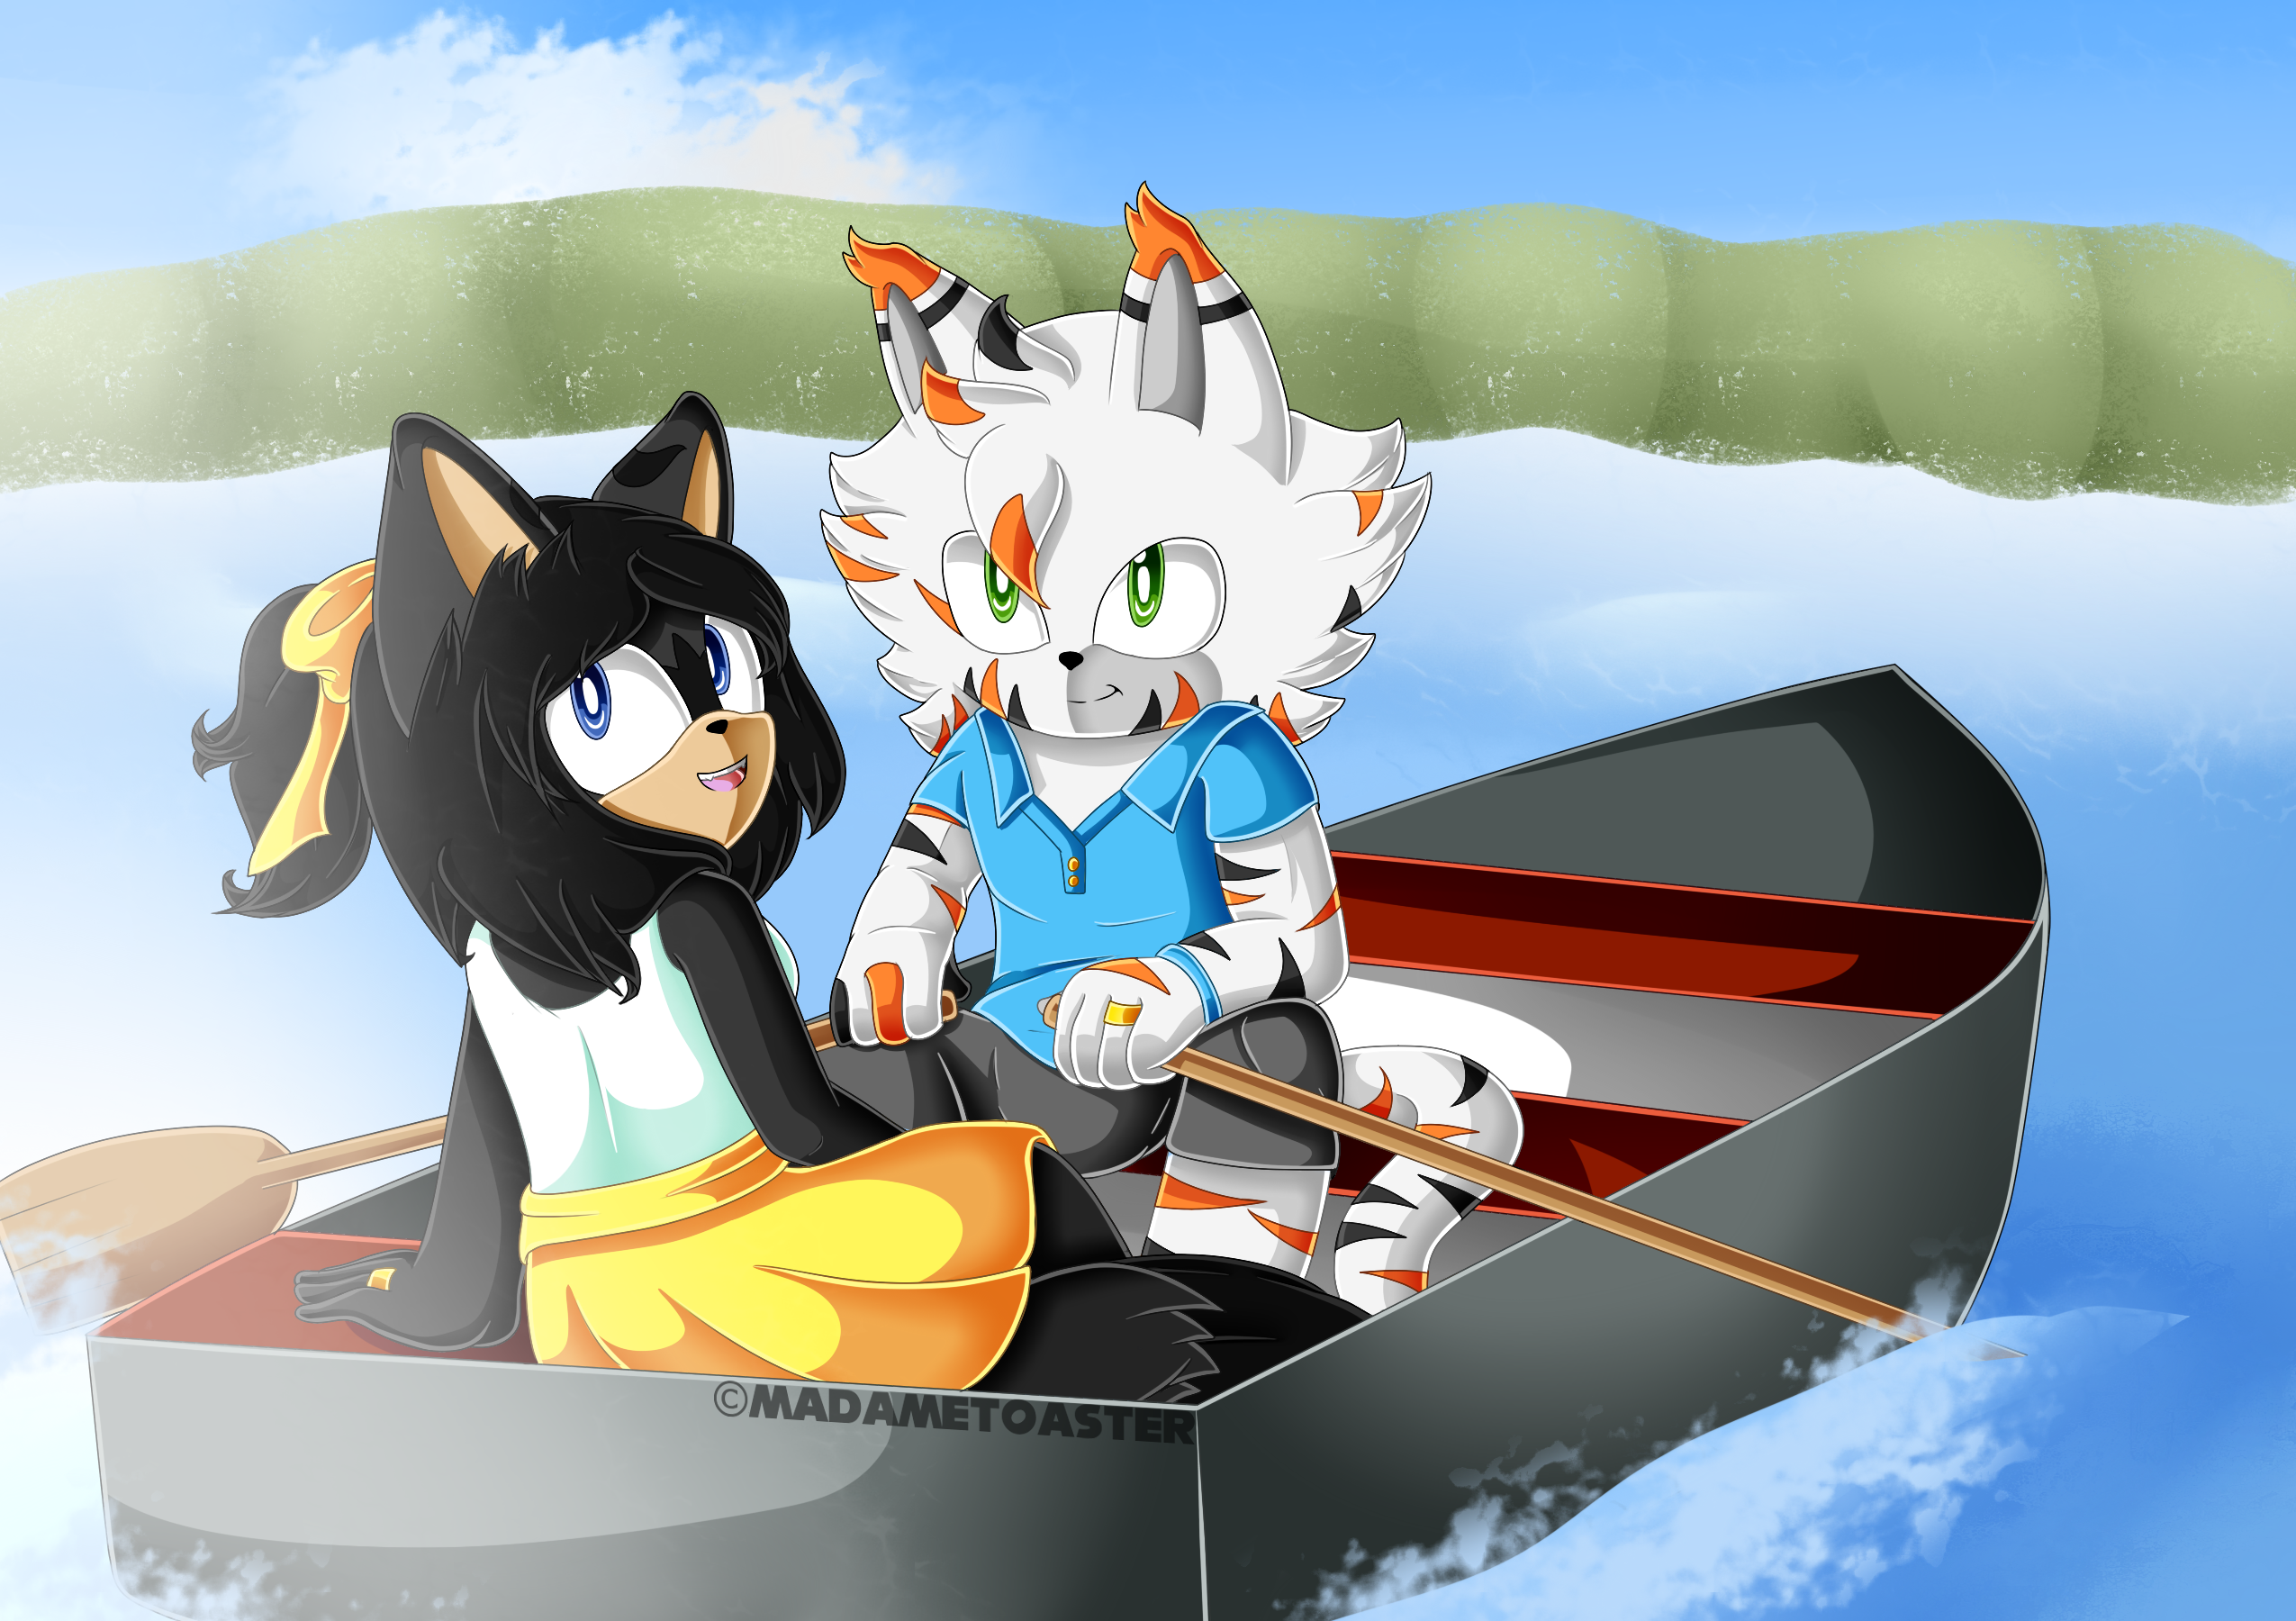 Boat Ride by xXElectric-HybridXx